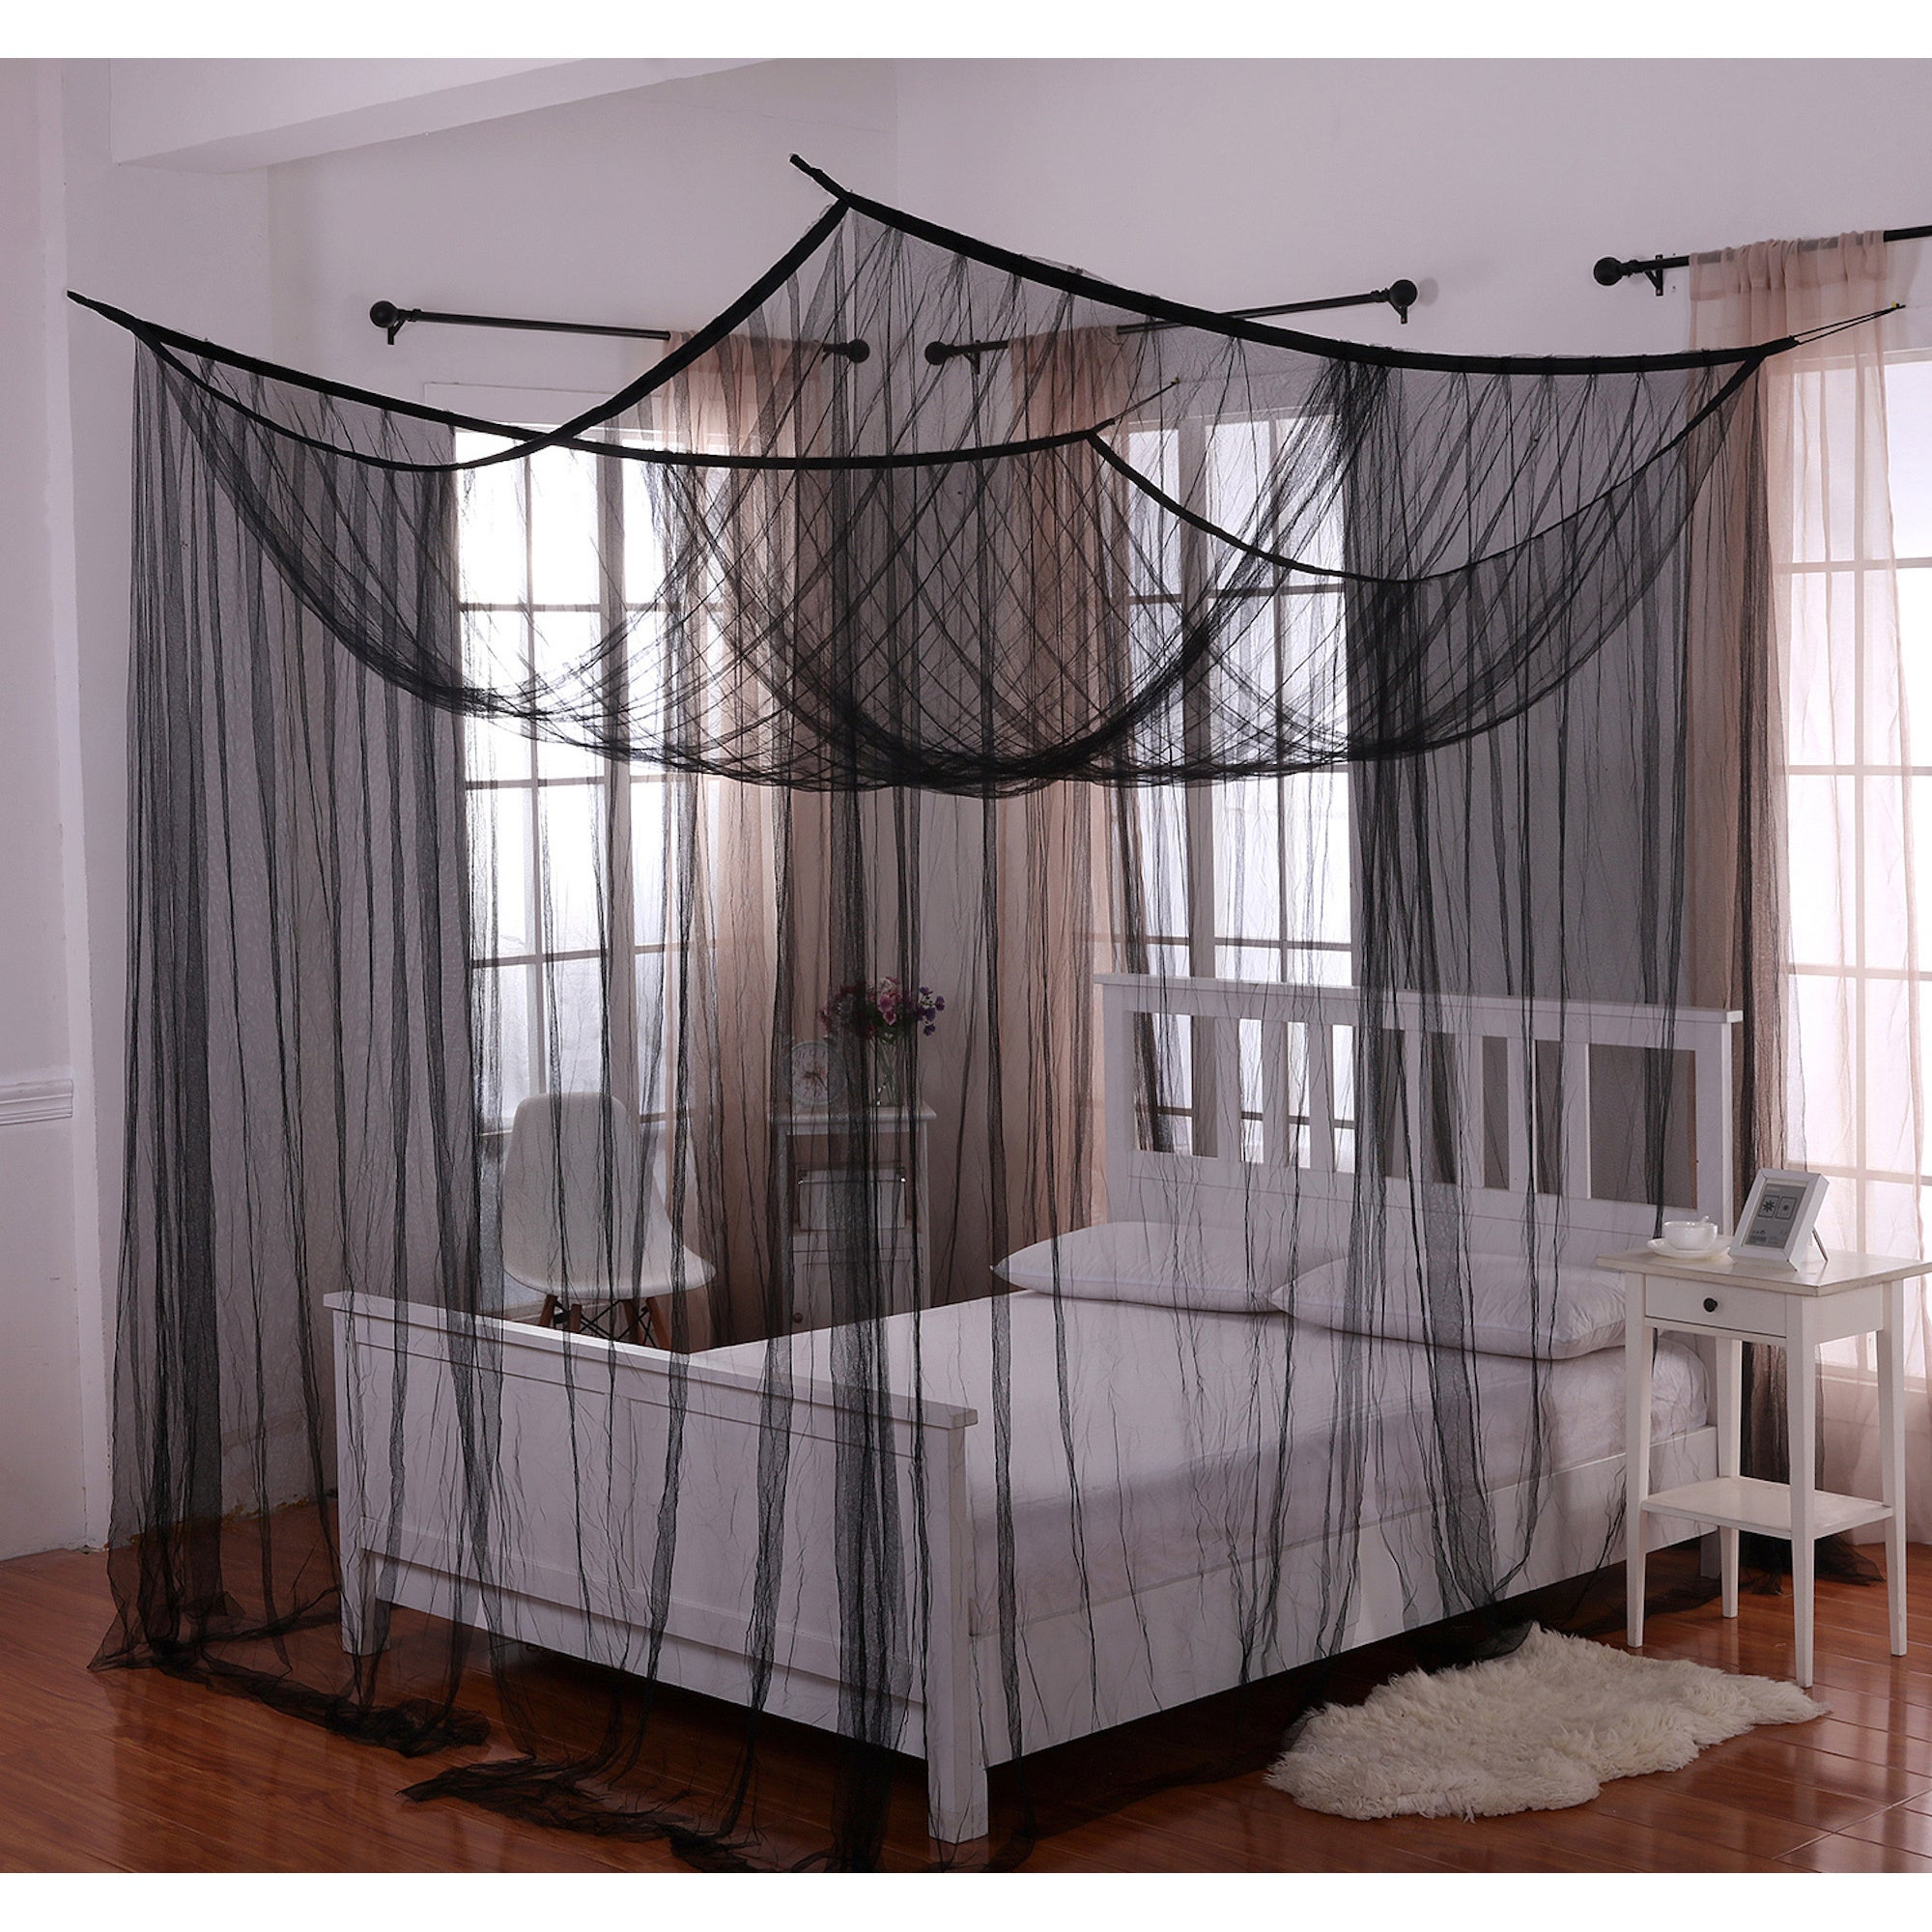 EPOCH HOMETEX, INC. Palace Four-poster Bed Canopy (Black)...